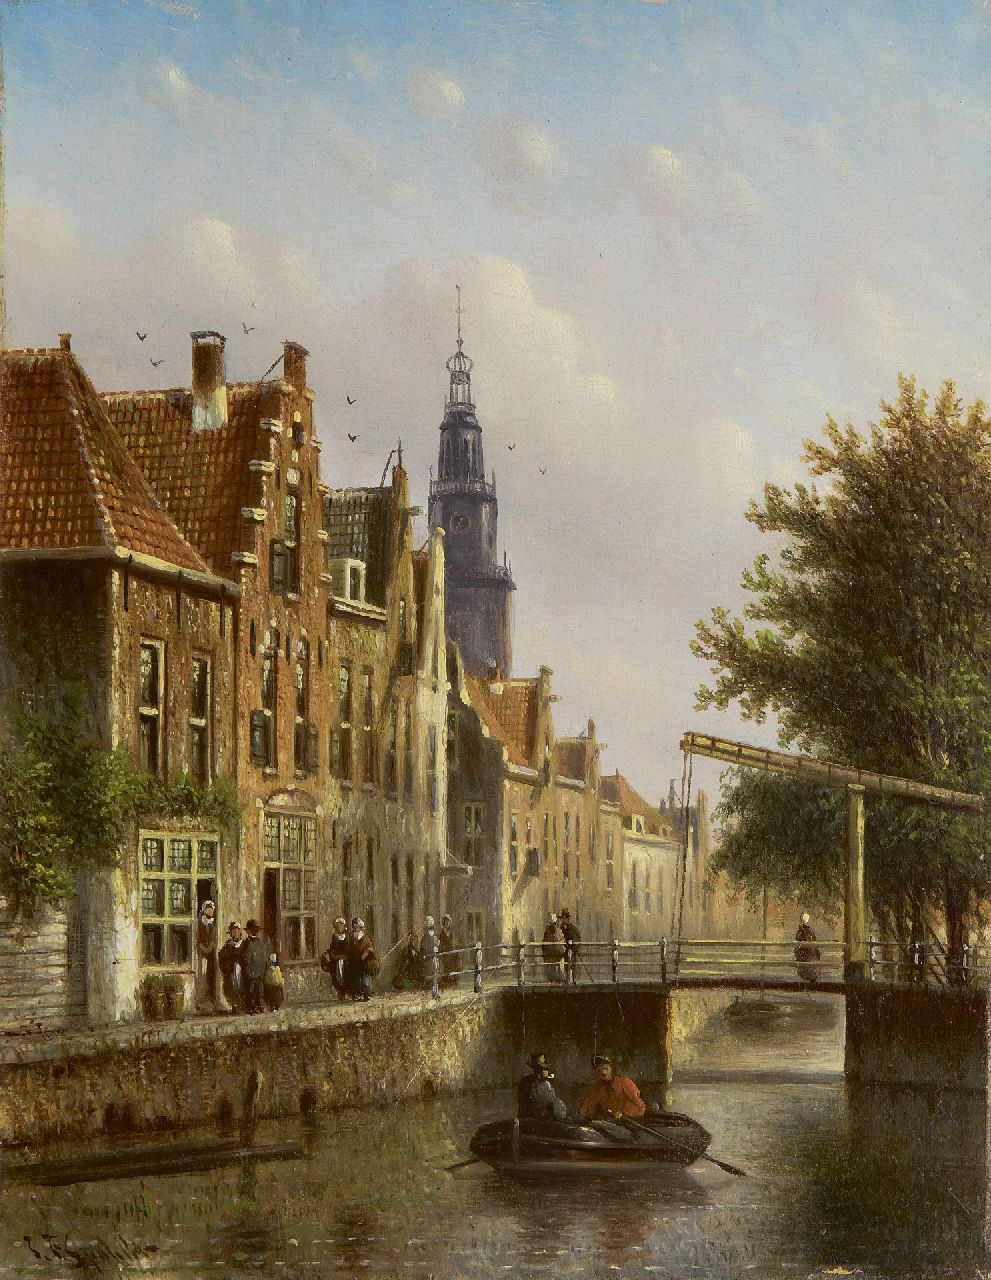 Spohler J.F.  | Johannes Franciscus Spohler, A fantasy view of the Raamgracht and Zuiderkerk, Amsterdam, oil on panel 20.4 x 15.8 cm, signed l.l.